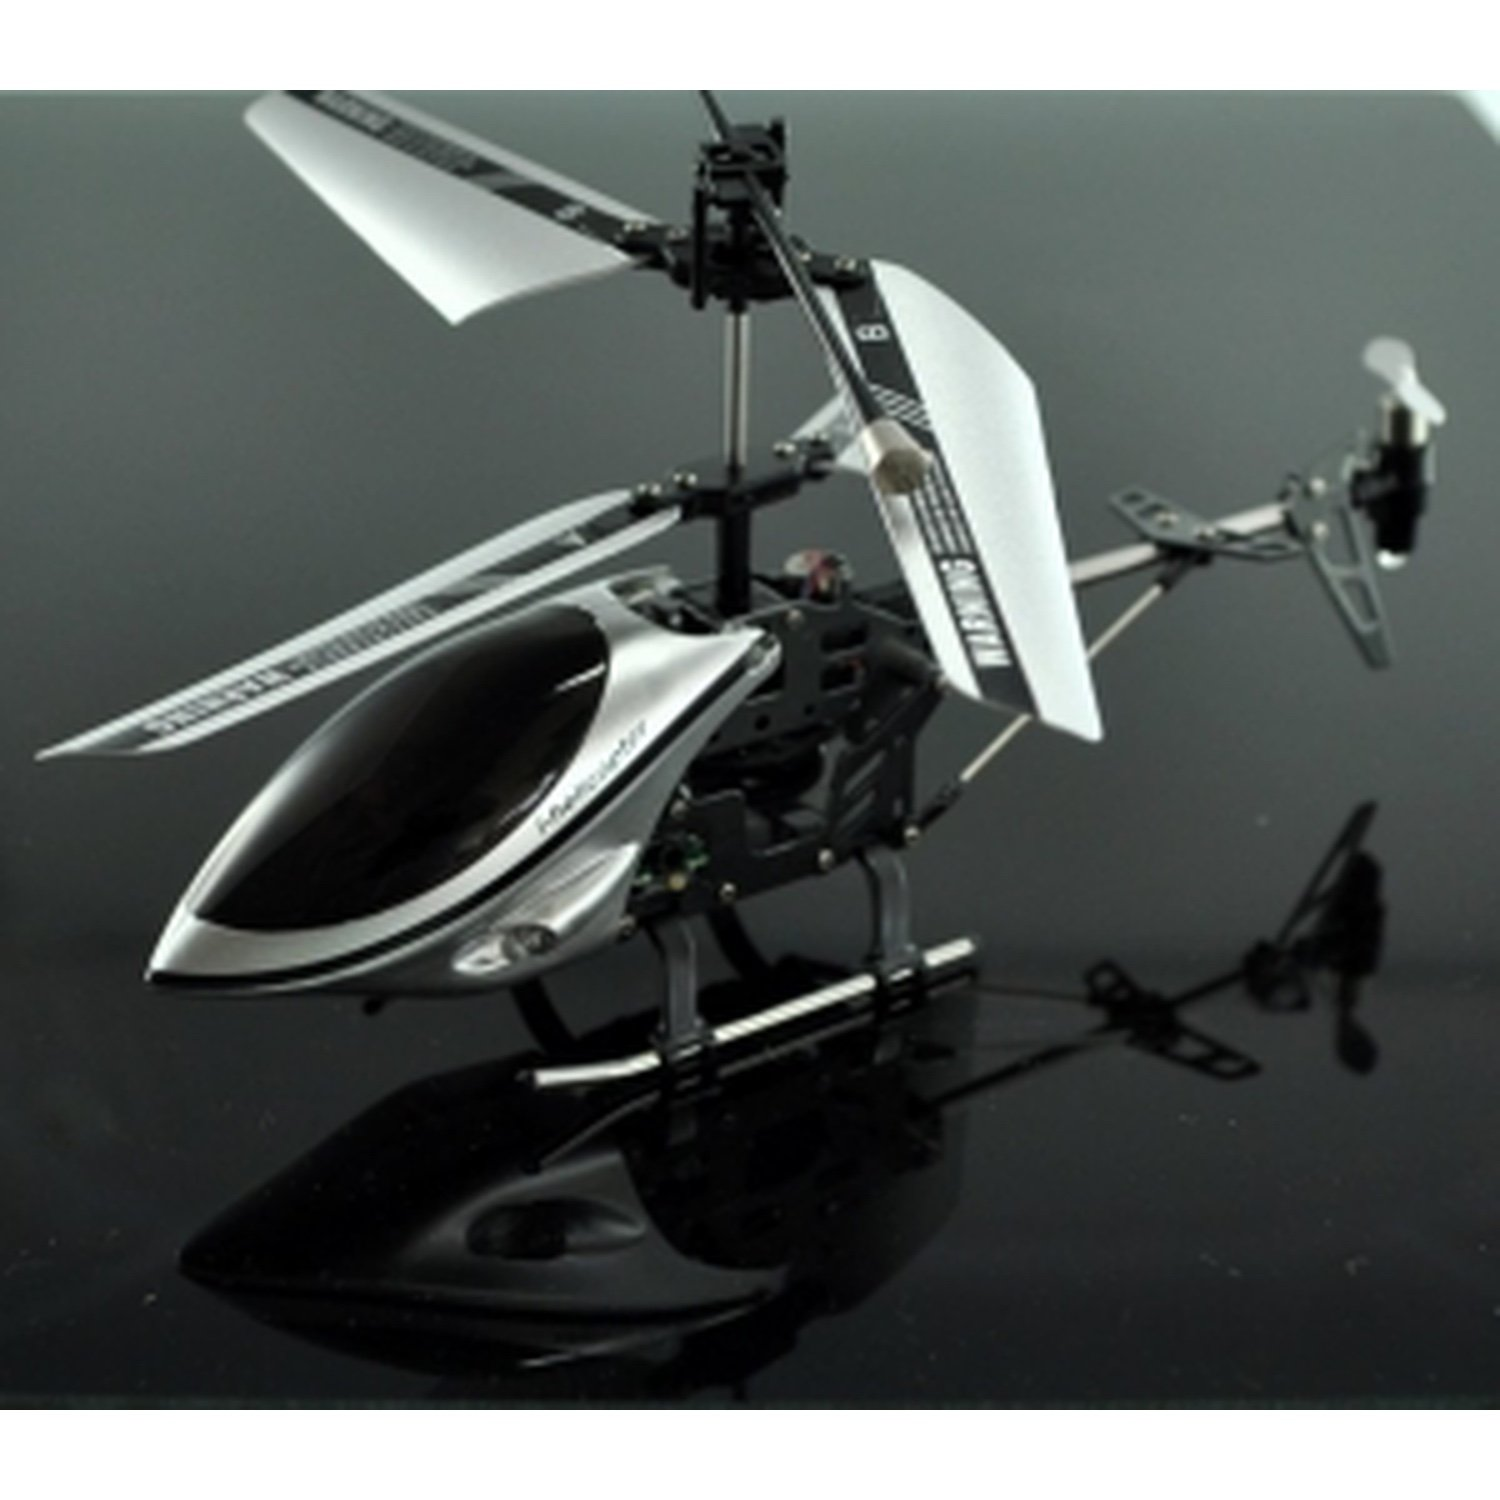 I-HELICOPTER 3.5 Channels + Gyroscope checkpoint by Iphone, iPad or iPod xtrememac ipu ia2 13 incharge auto for iphone ipod ipad